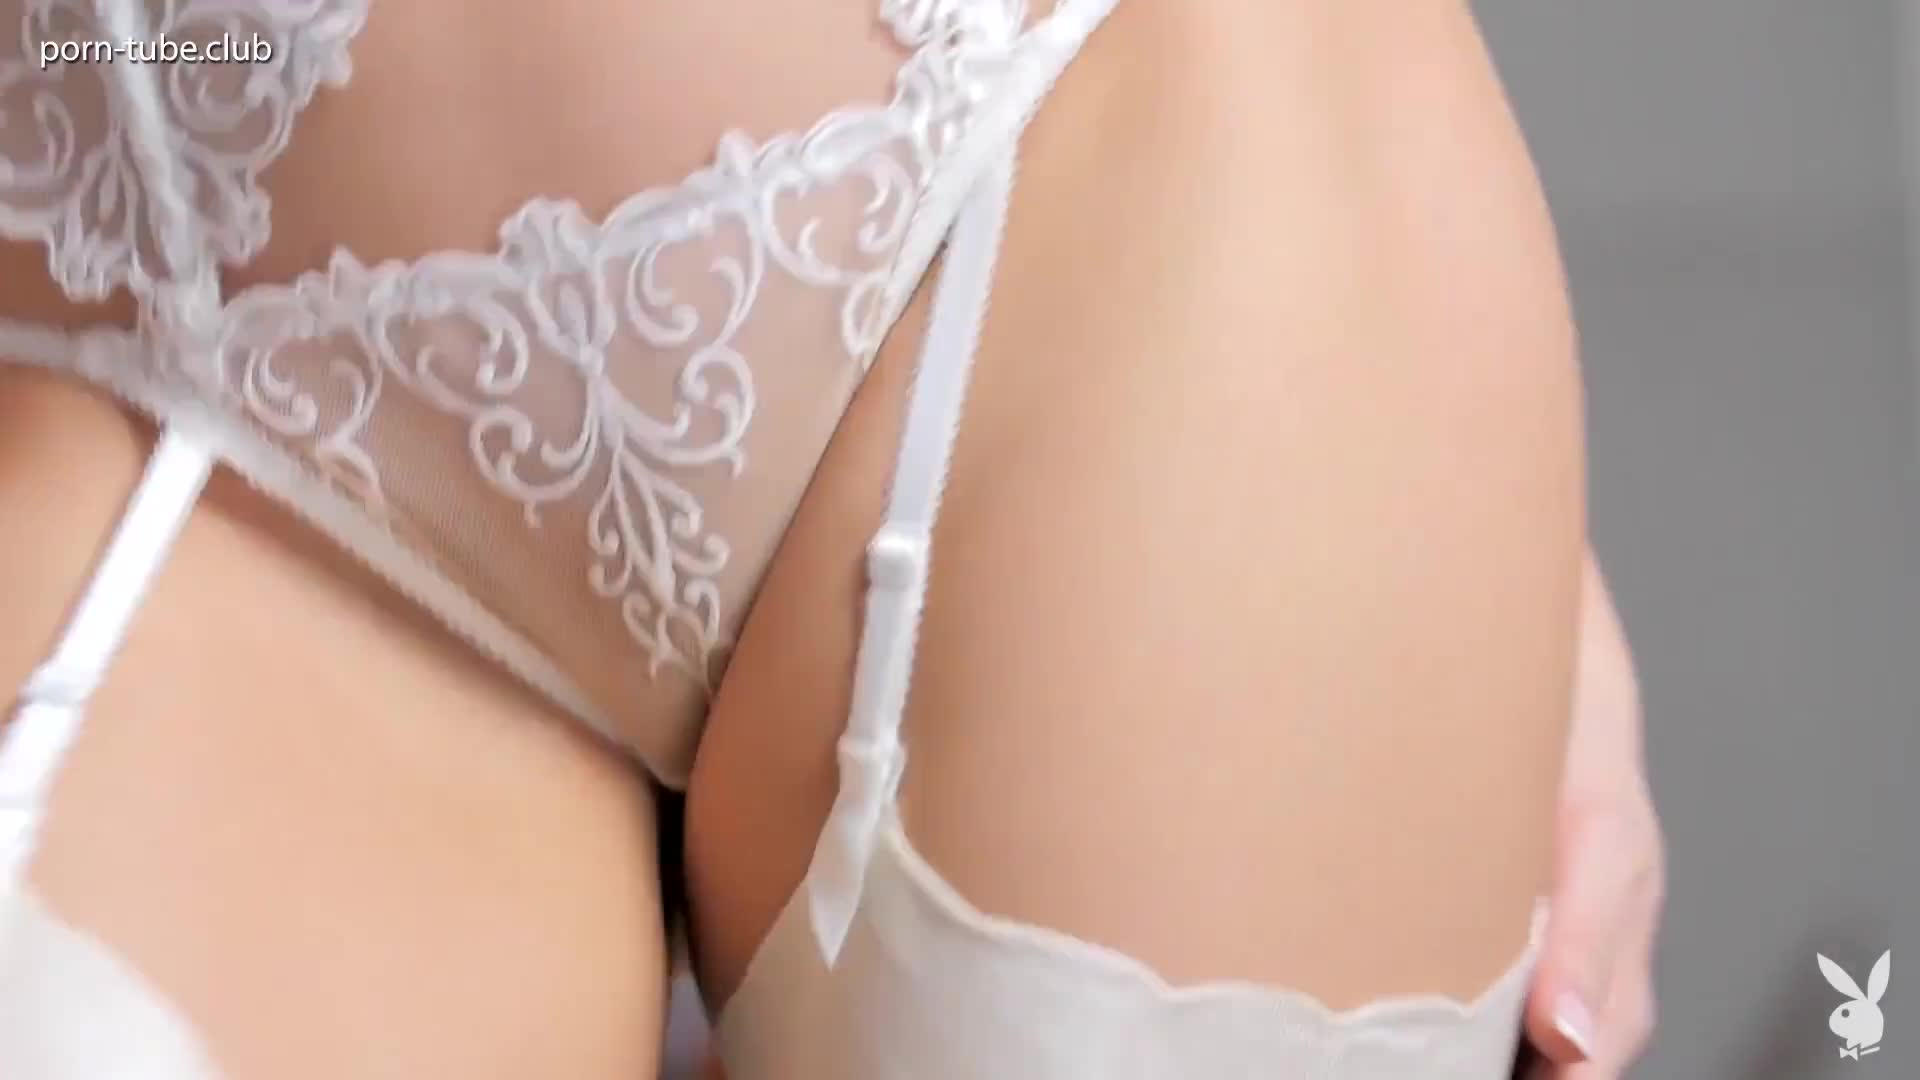 PlayboyPlus 18.01.28 Mashup Garter Love. Vol 1